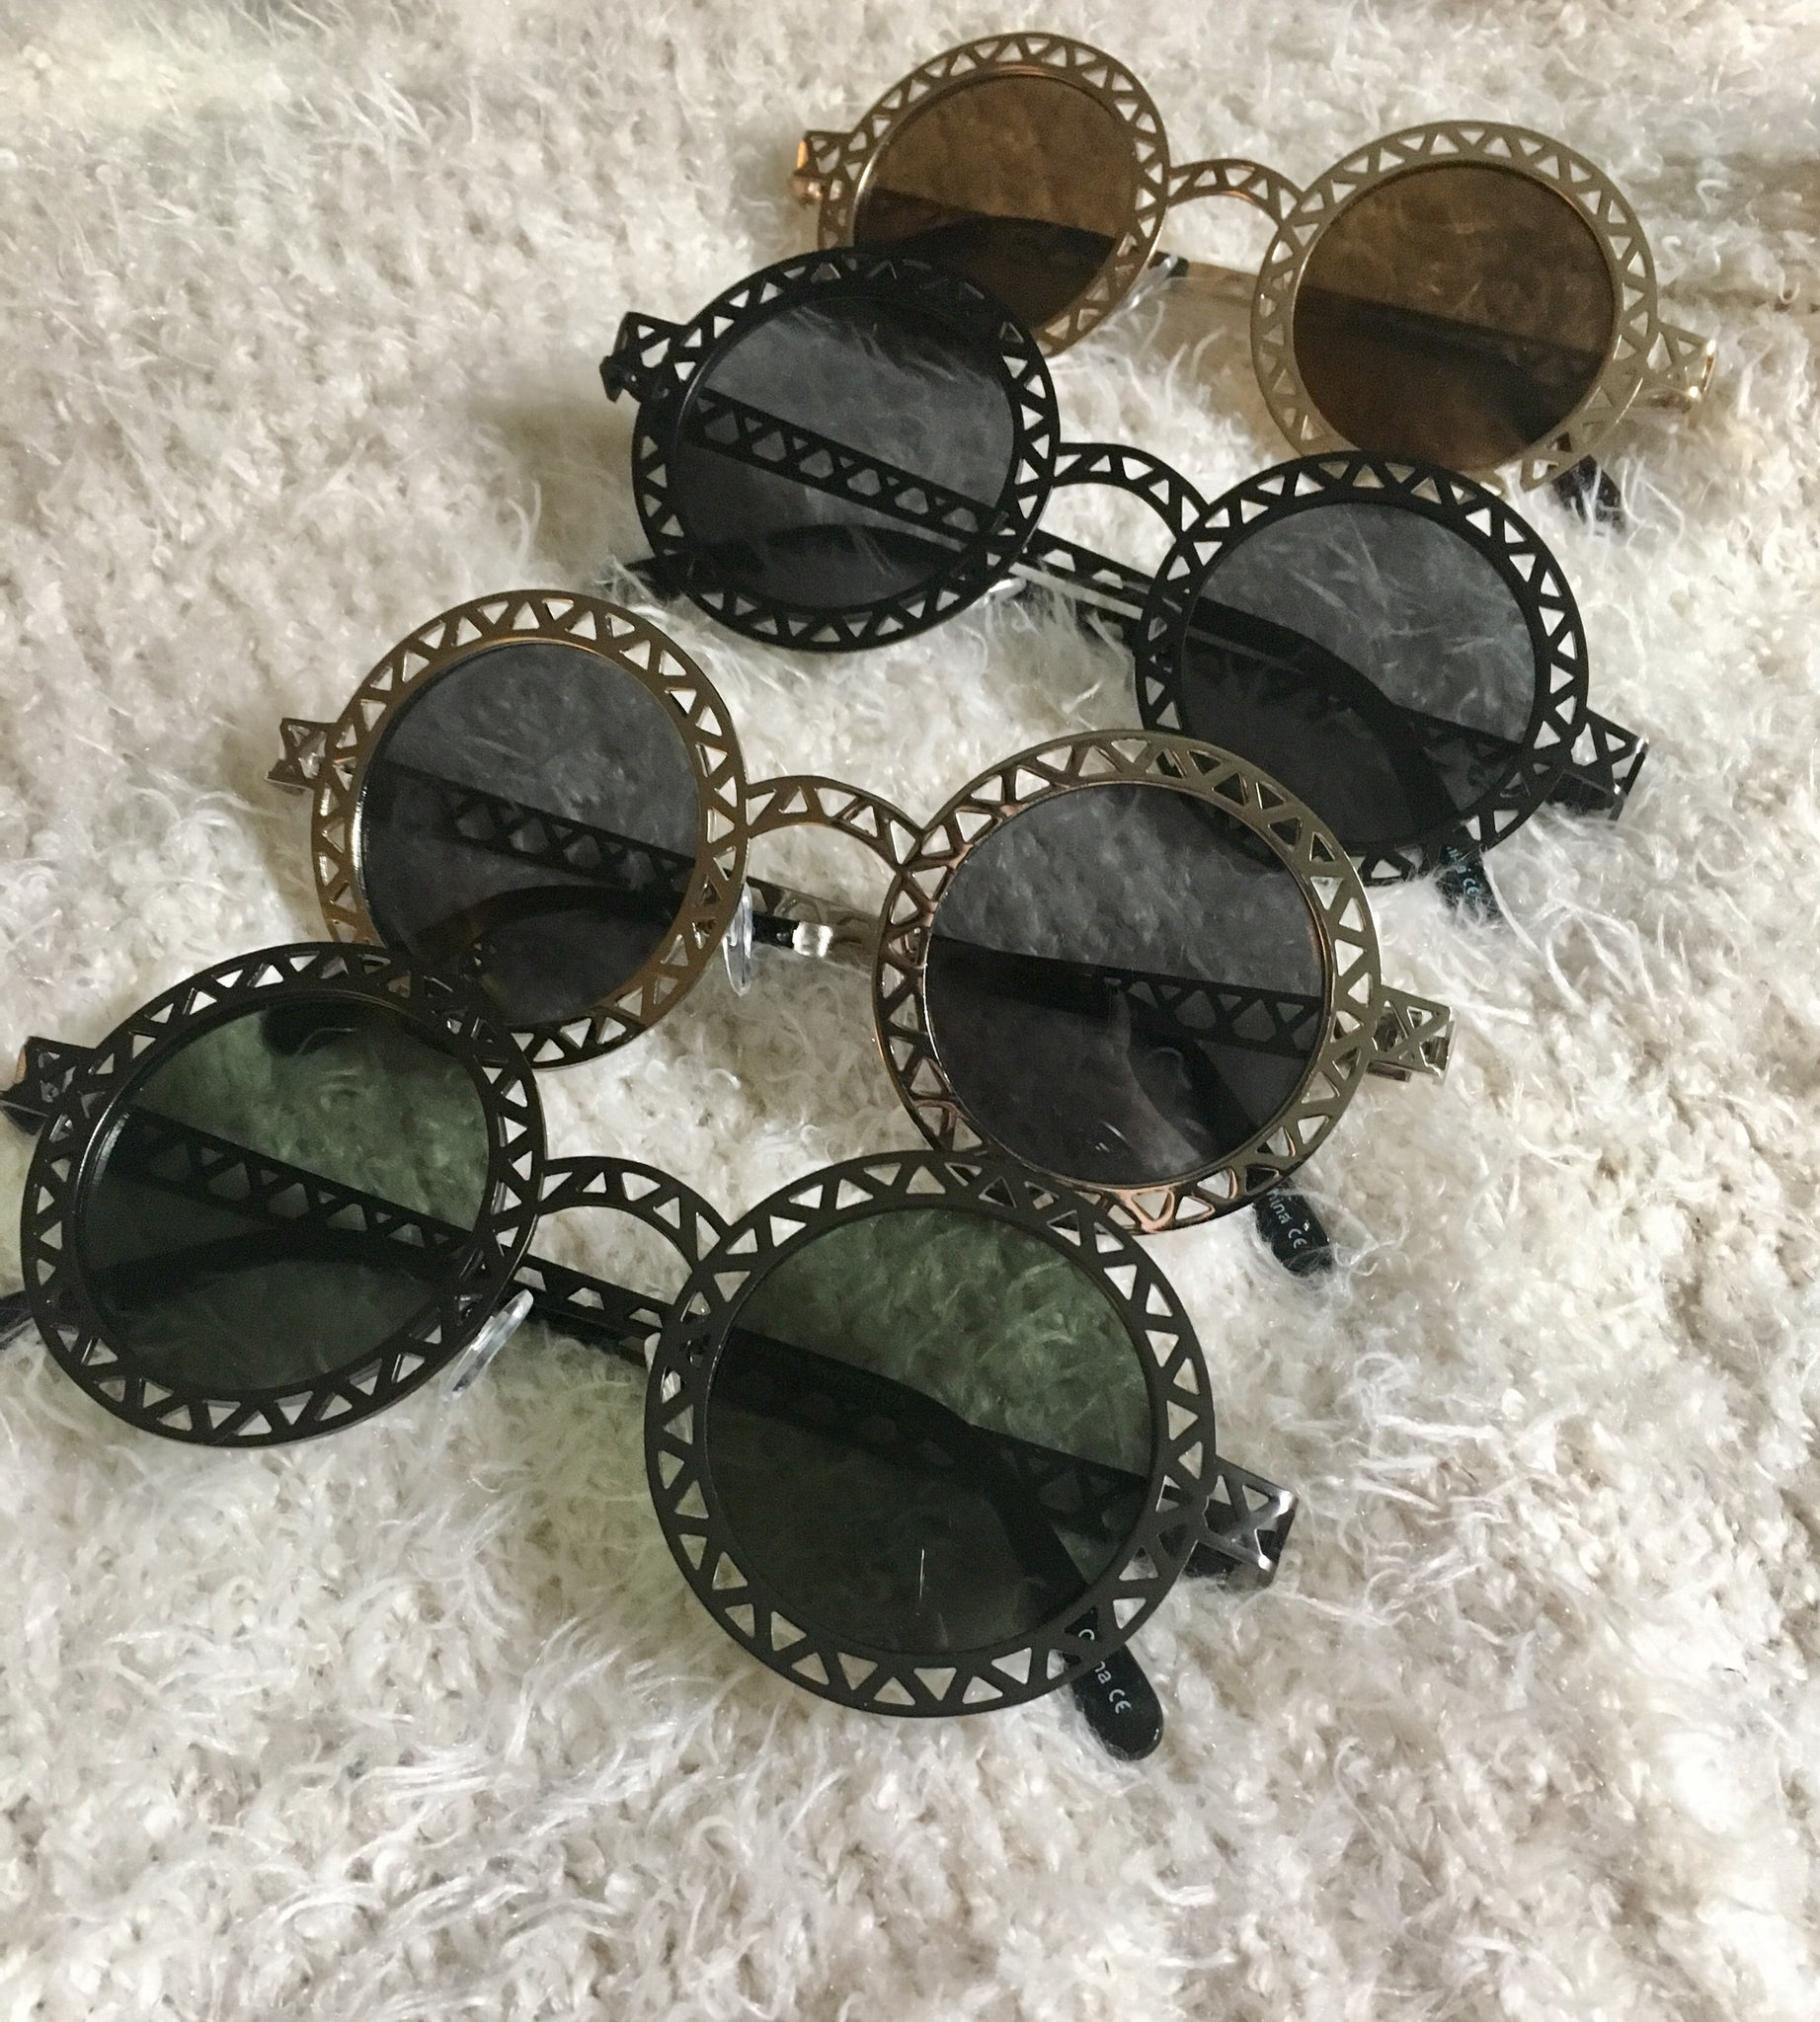 Round Metallic Cut out Dark Lense Sunglasses -All metal